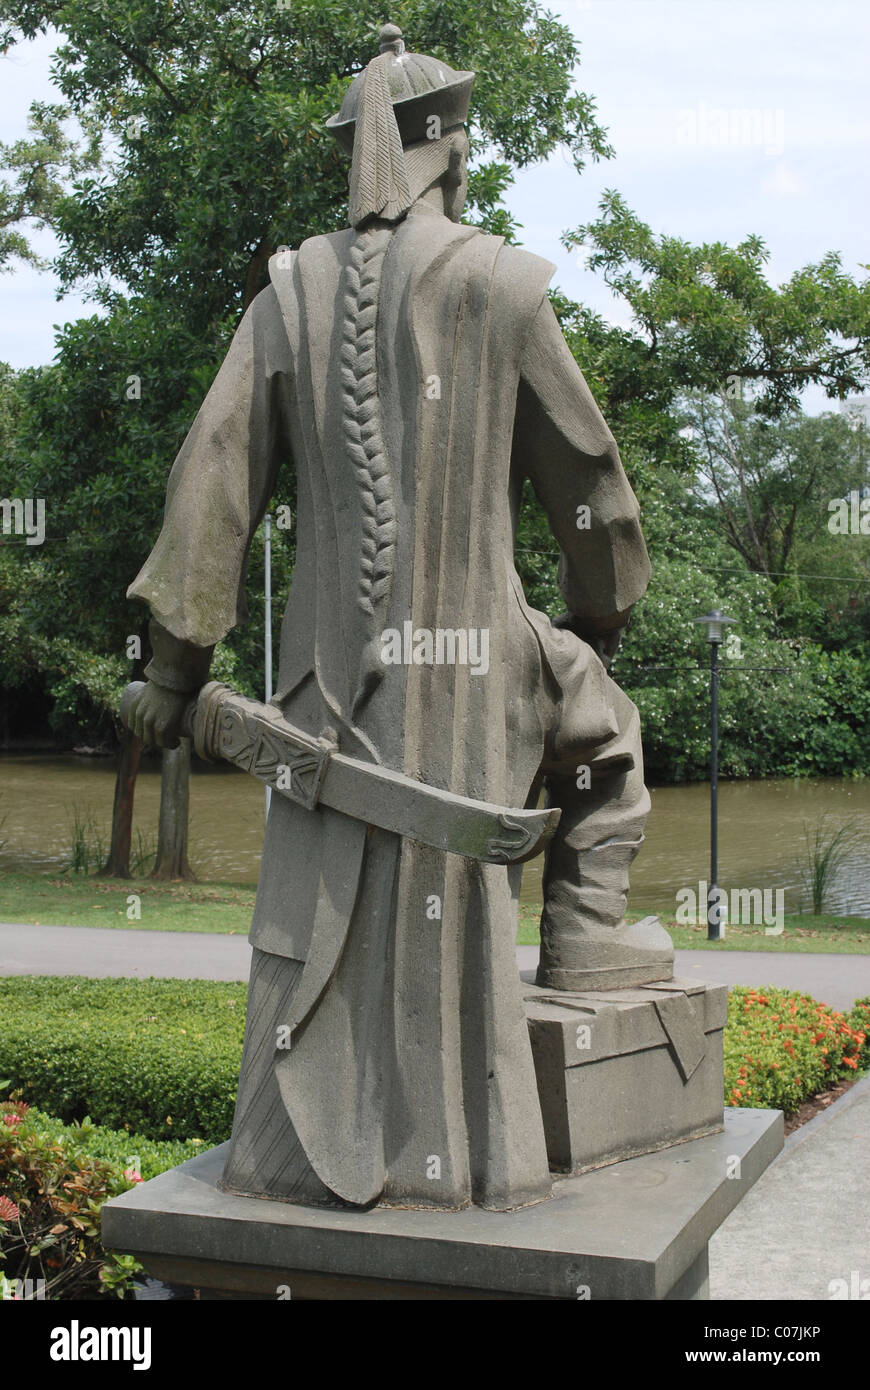 Merveilleux Stone Statue At Chinese Garden, Singapore Stock Photo ...